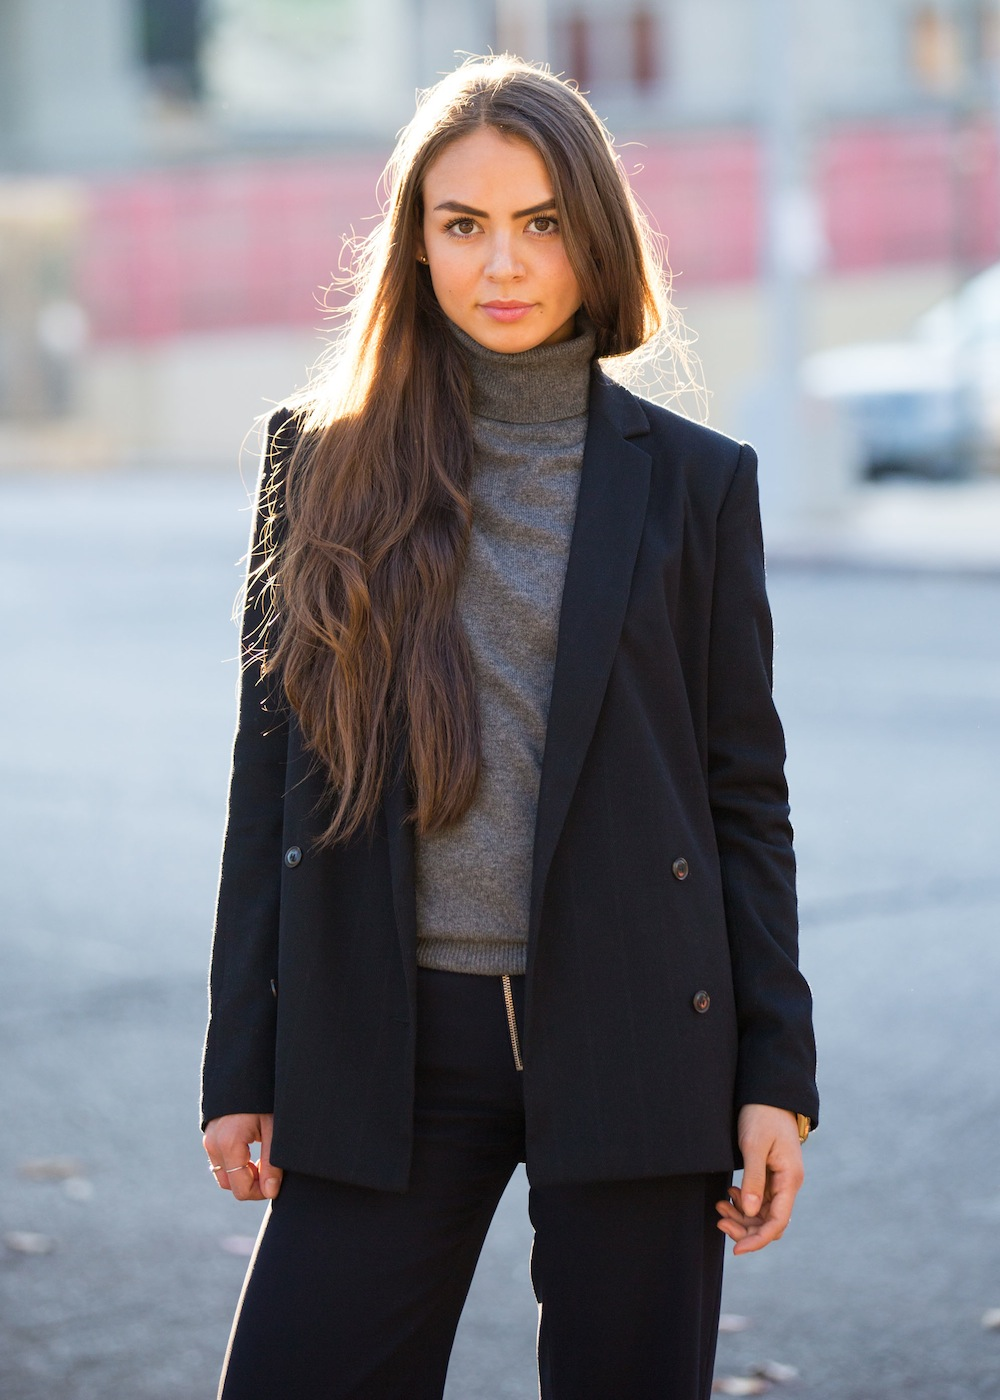 Emily Oberg, Founder of Sport and Rich @emilyelaineoberg